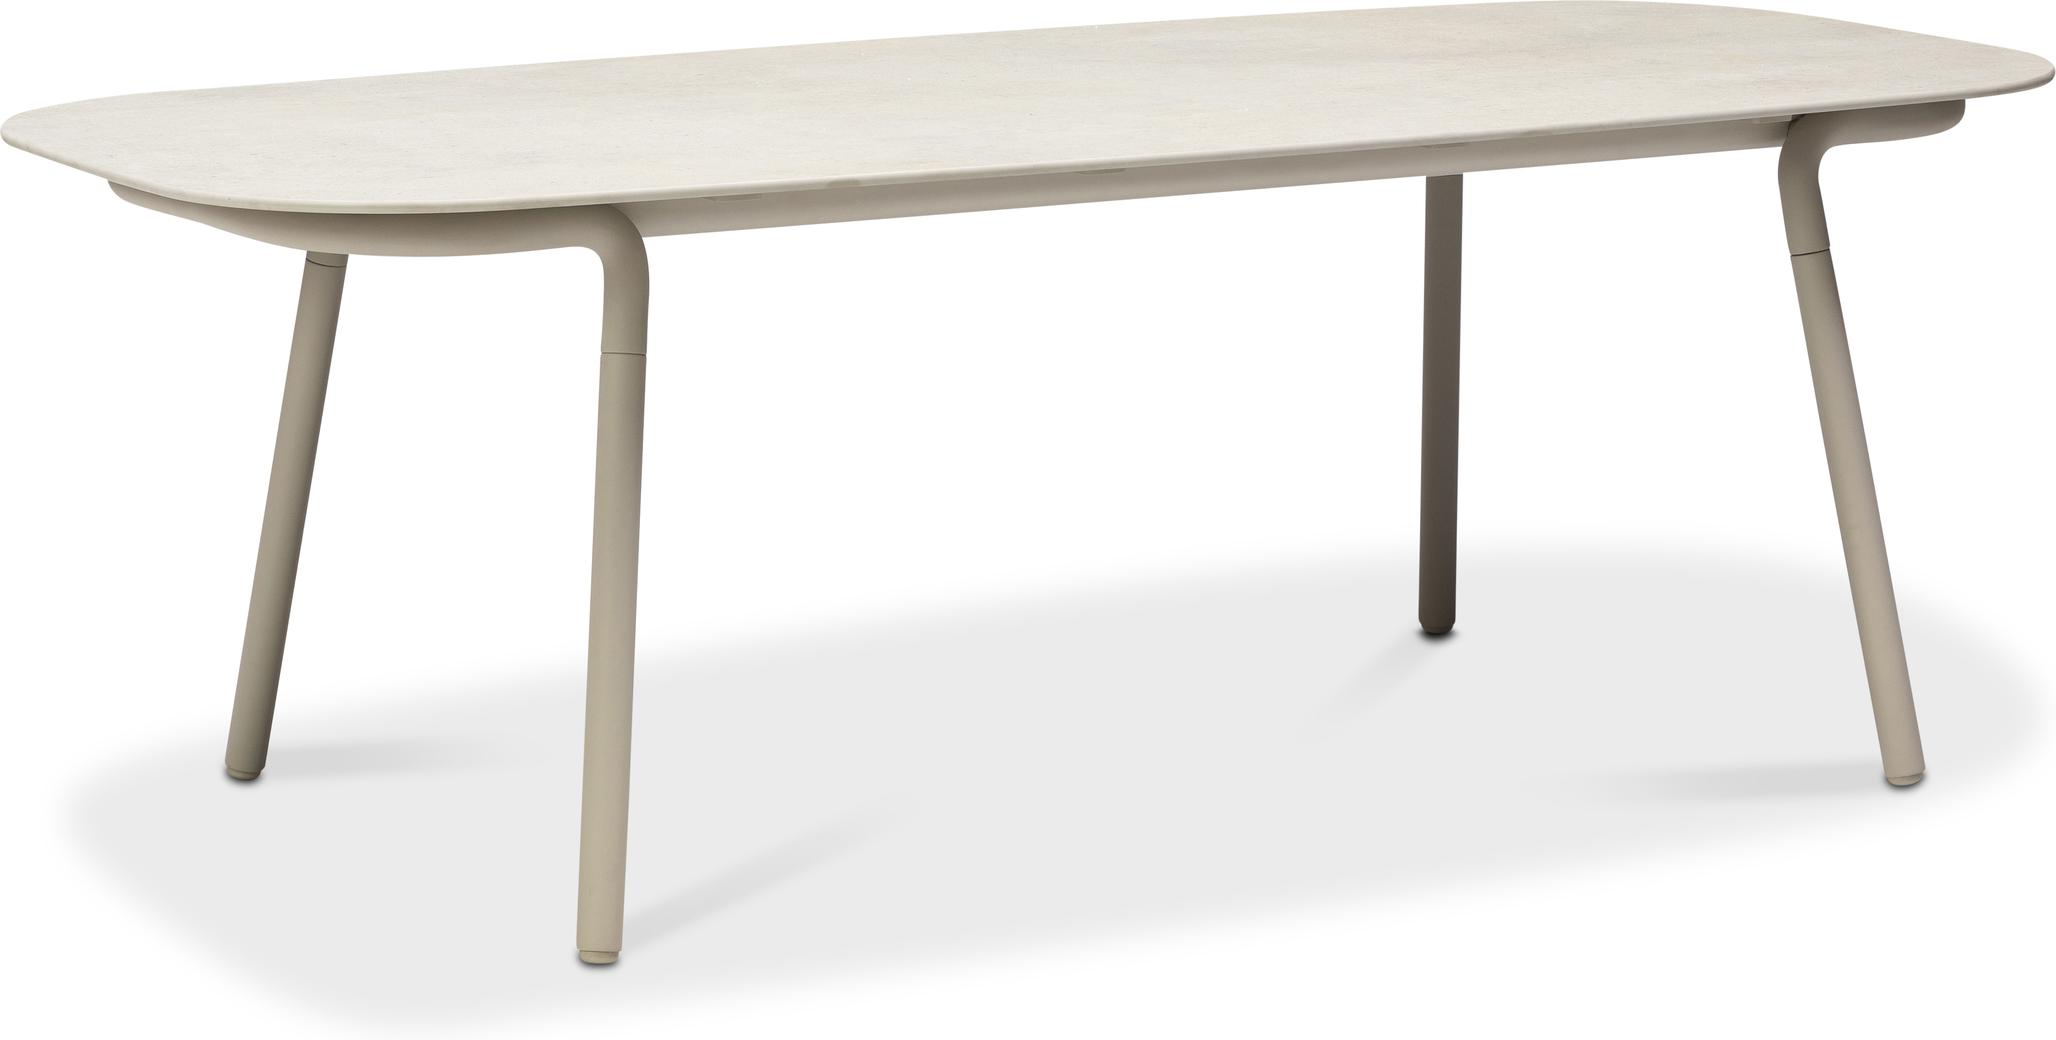 Minus Dining table - flint - CC 280